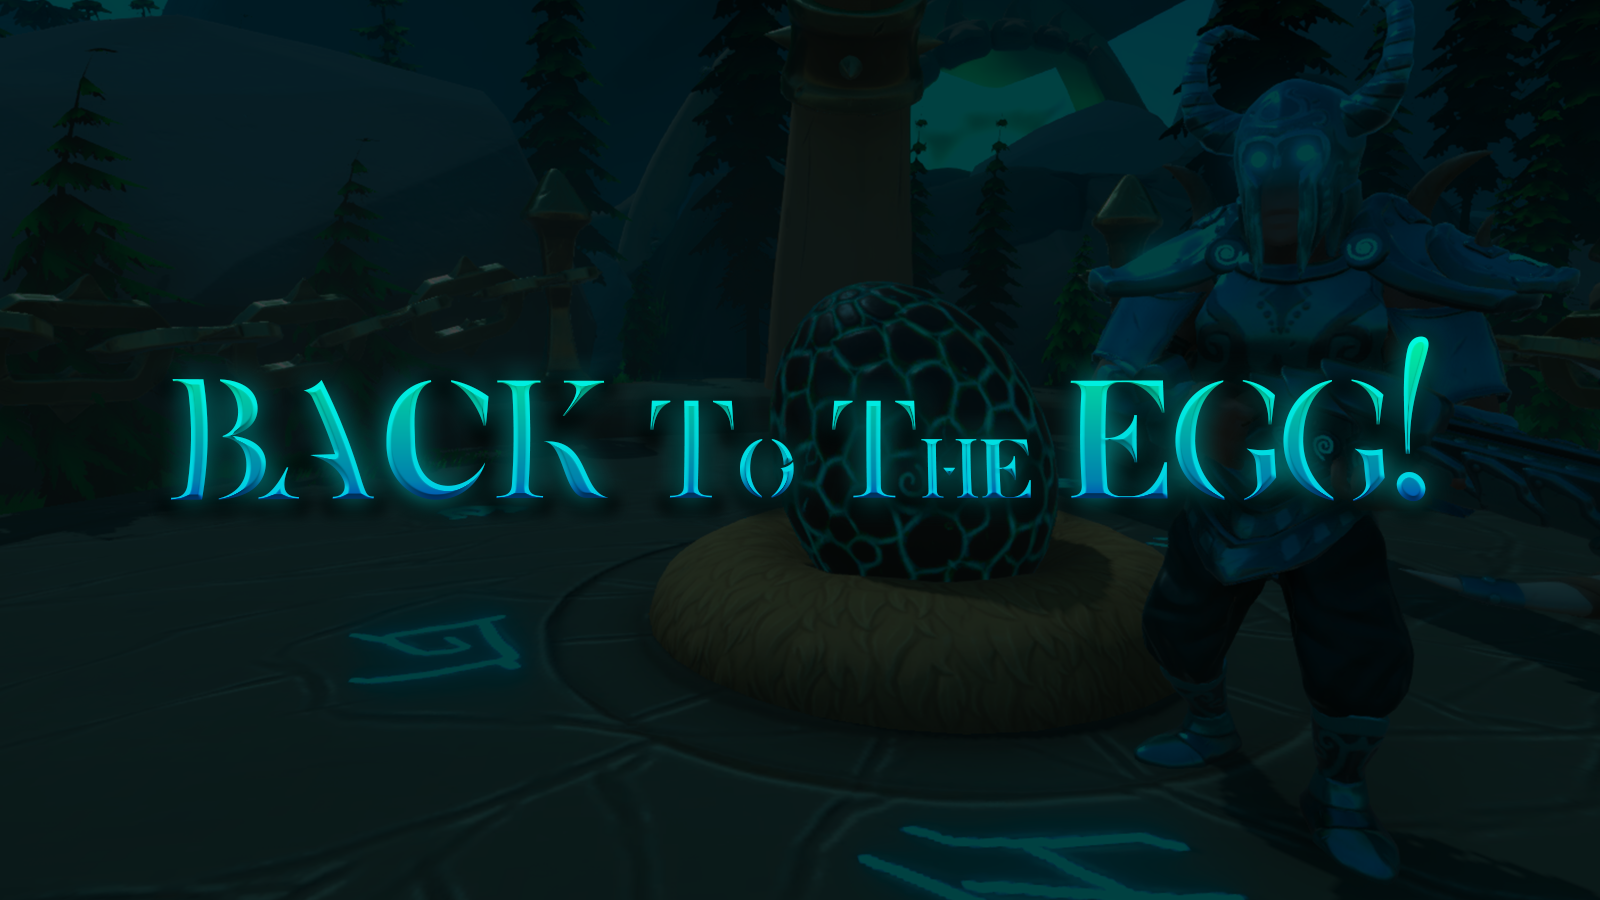 BACK TO THE EGG!